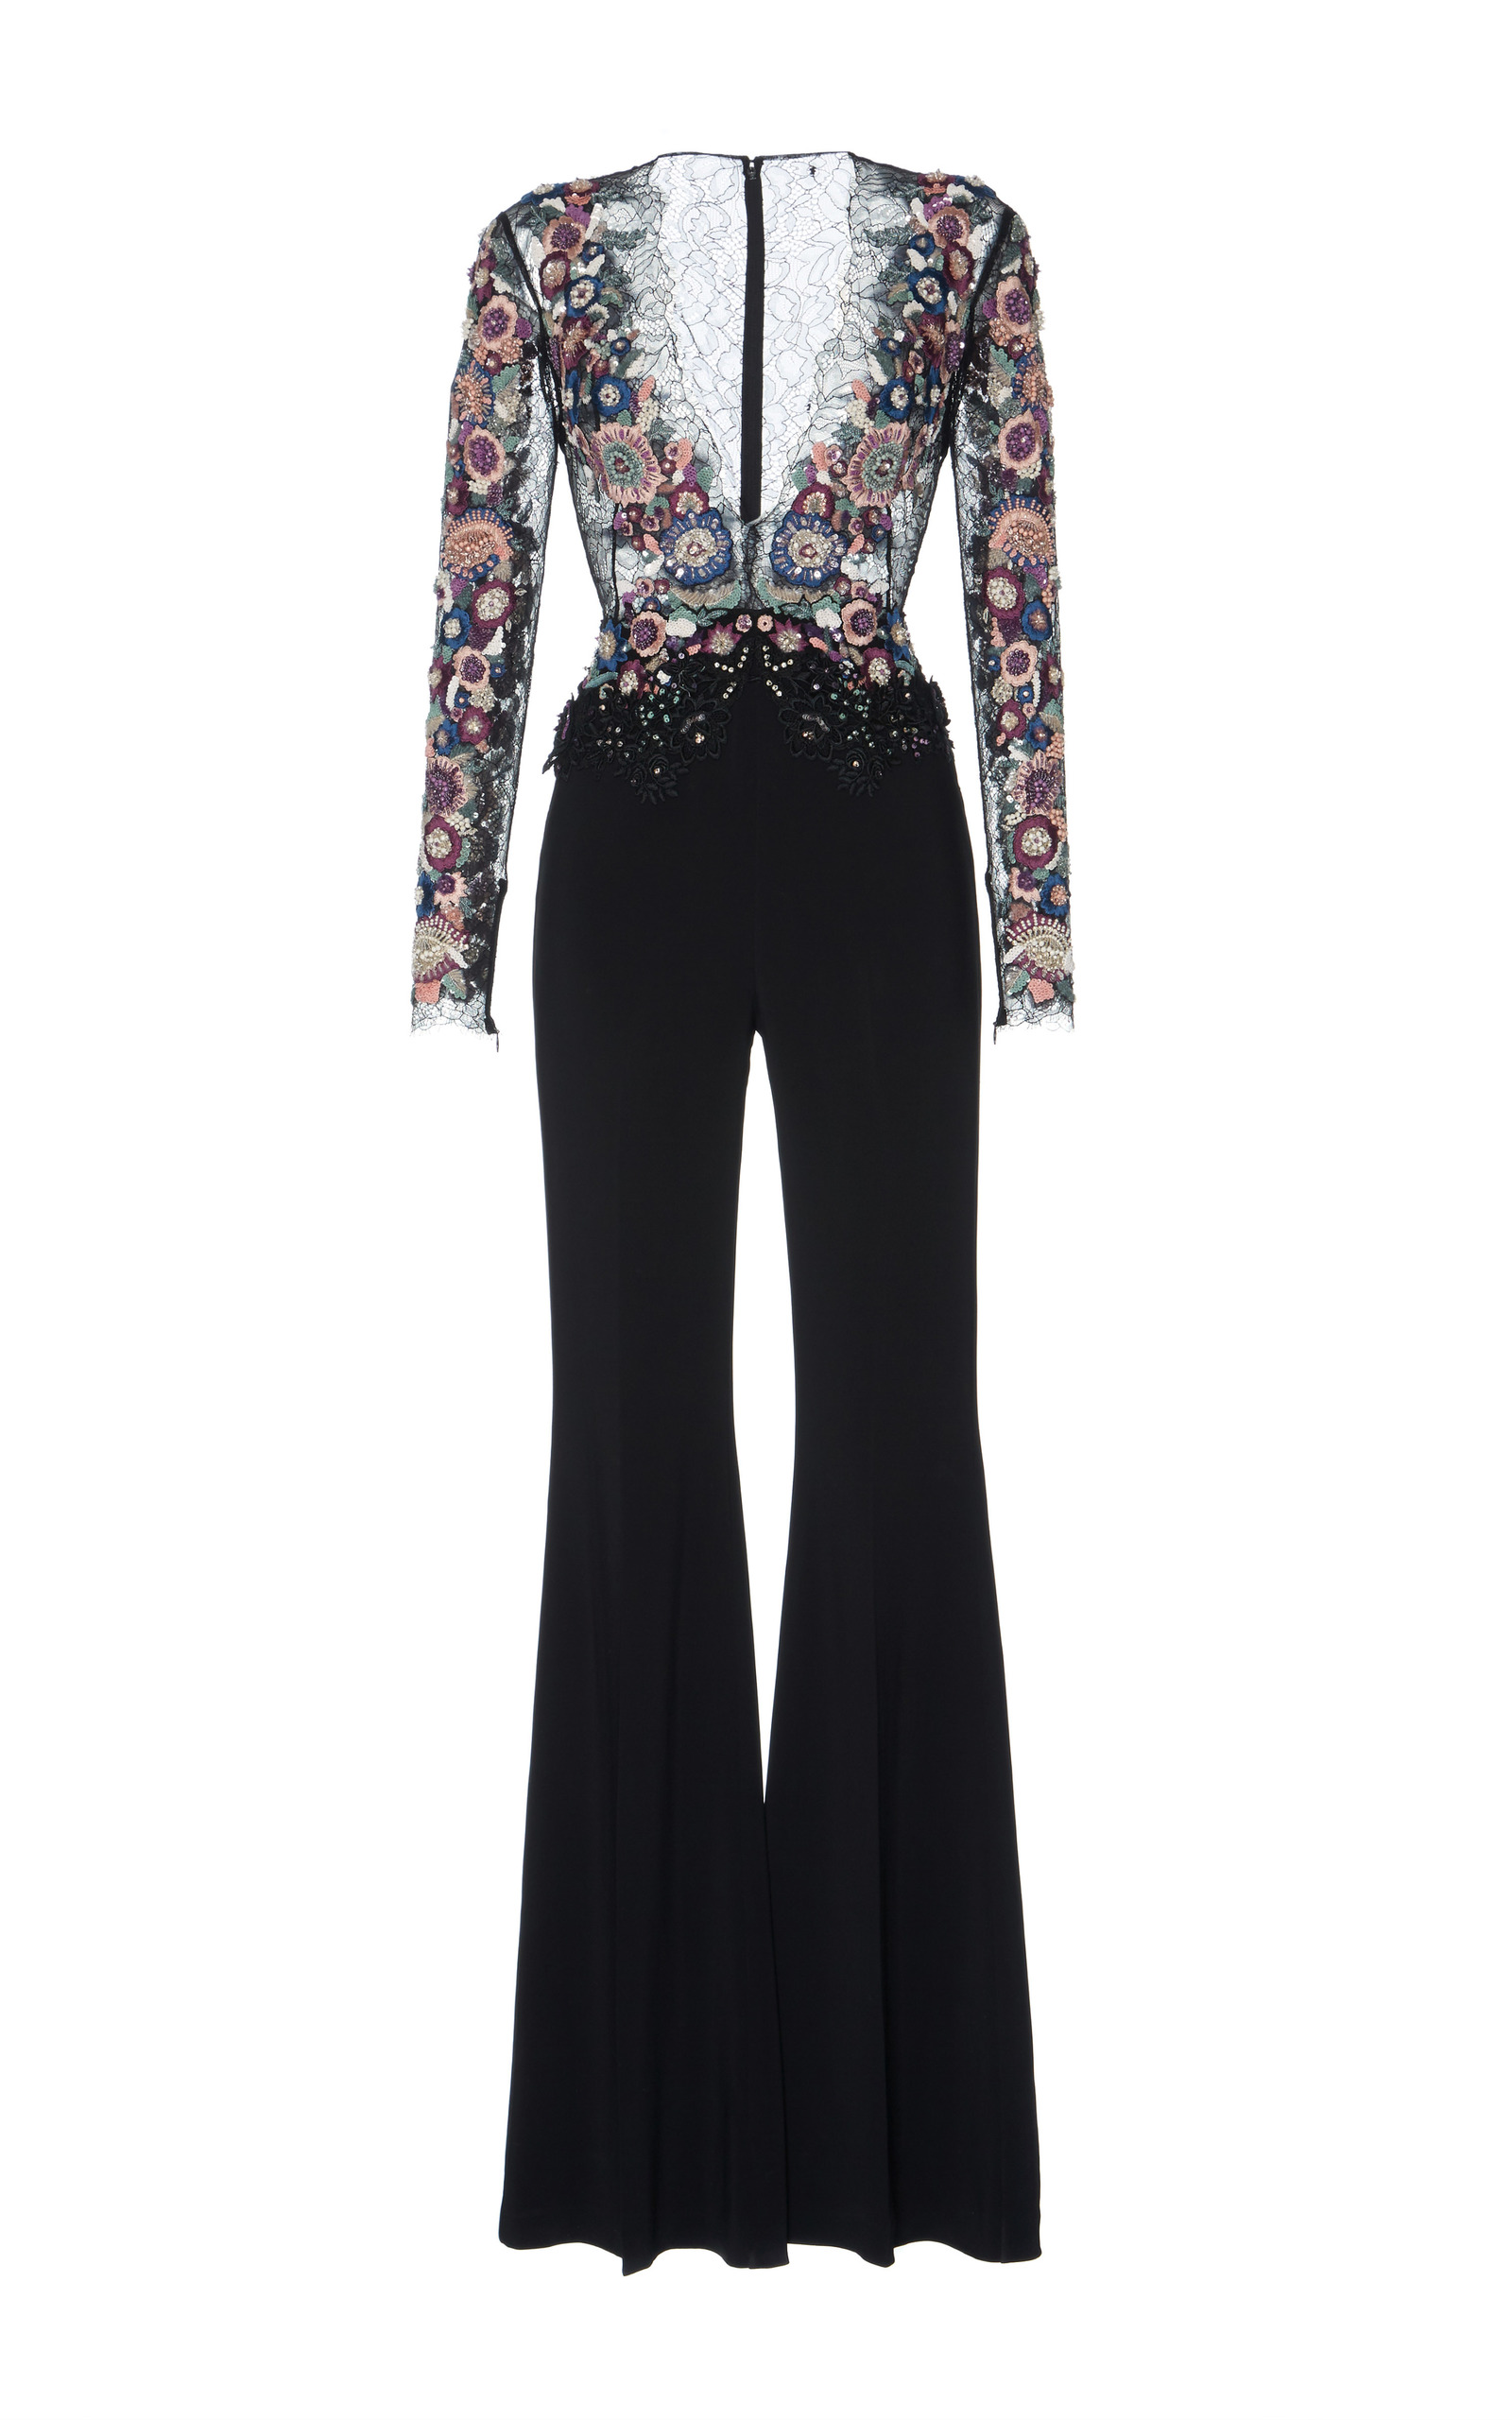 575ed8ec5611 Zuhair MuradSequin Embroidered Jumpsuit. CLOSE. Loading